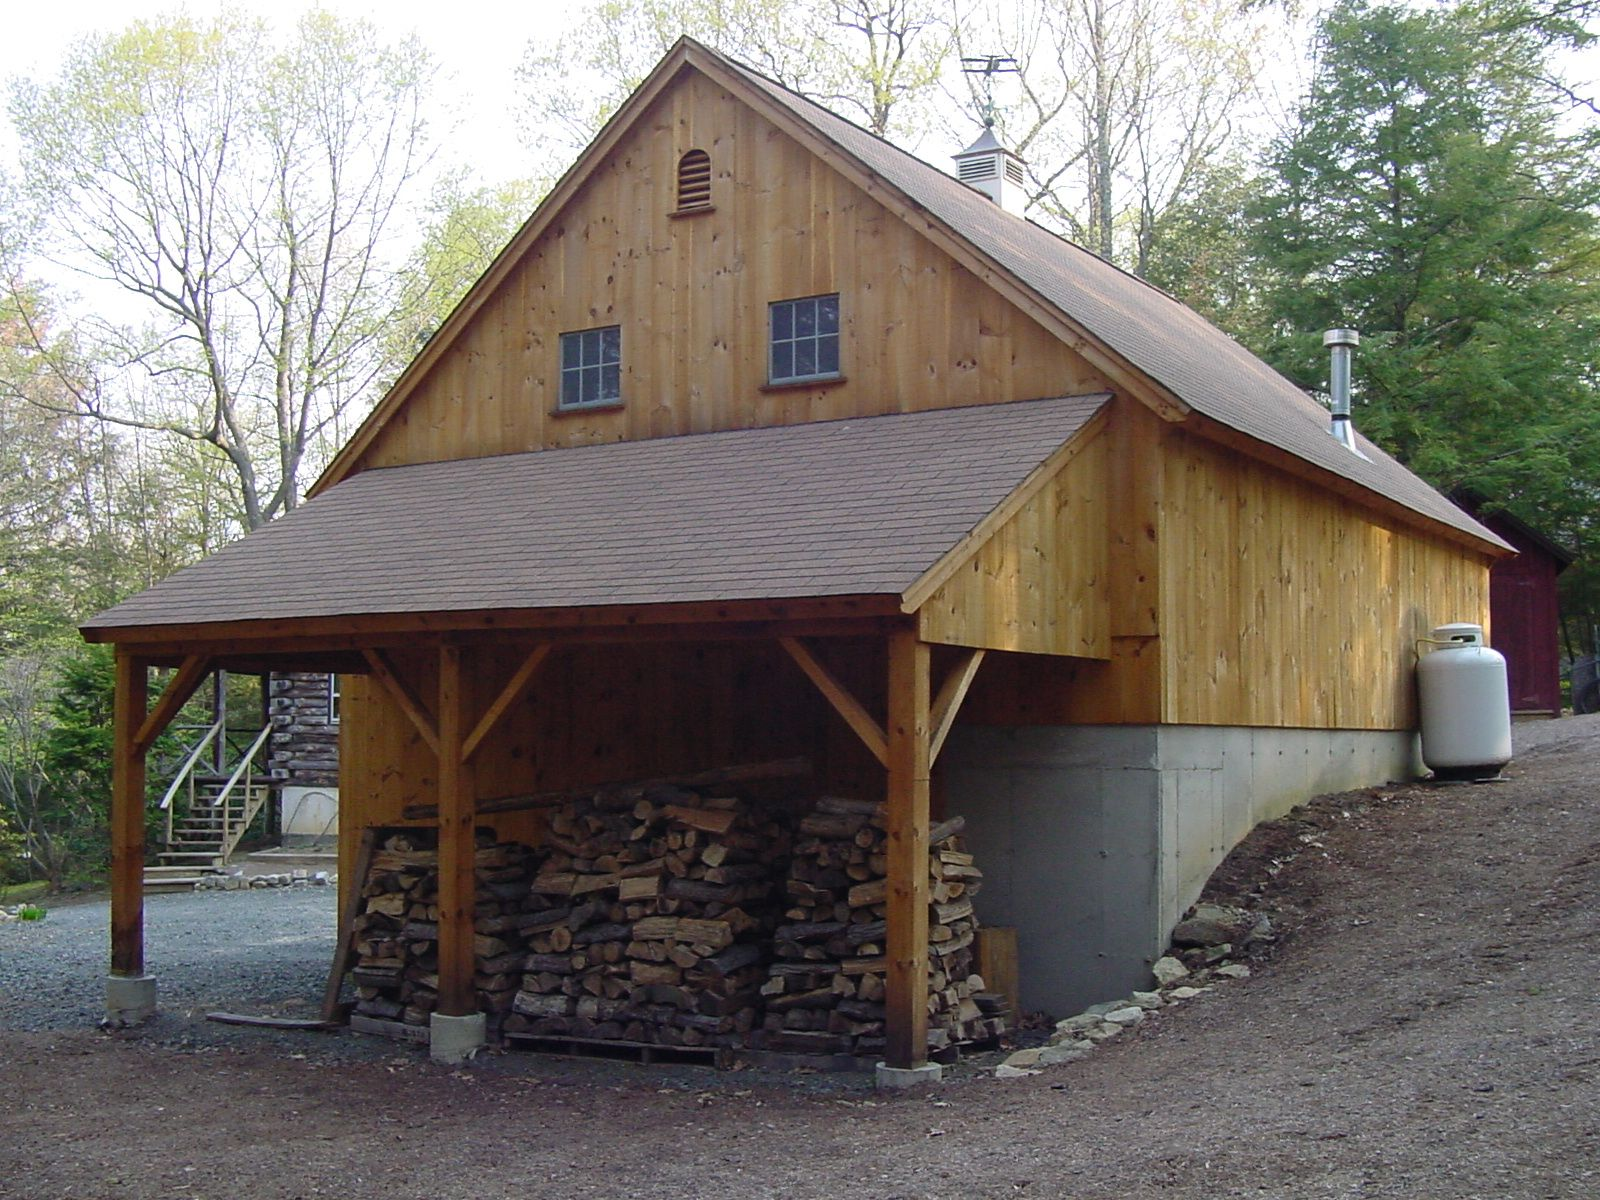 Our 22'x 36' 1-1/2 Story Barn With 10'x 20' Open Gable